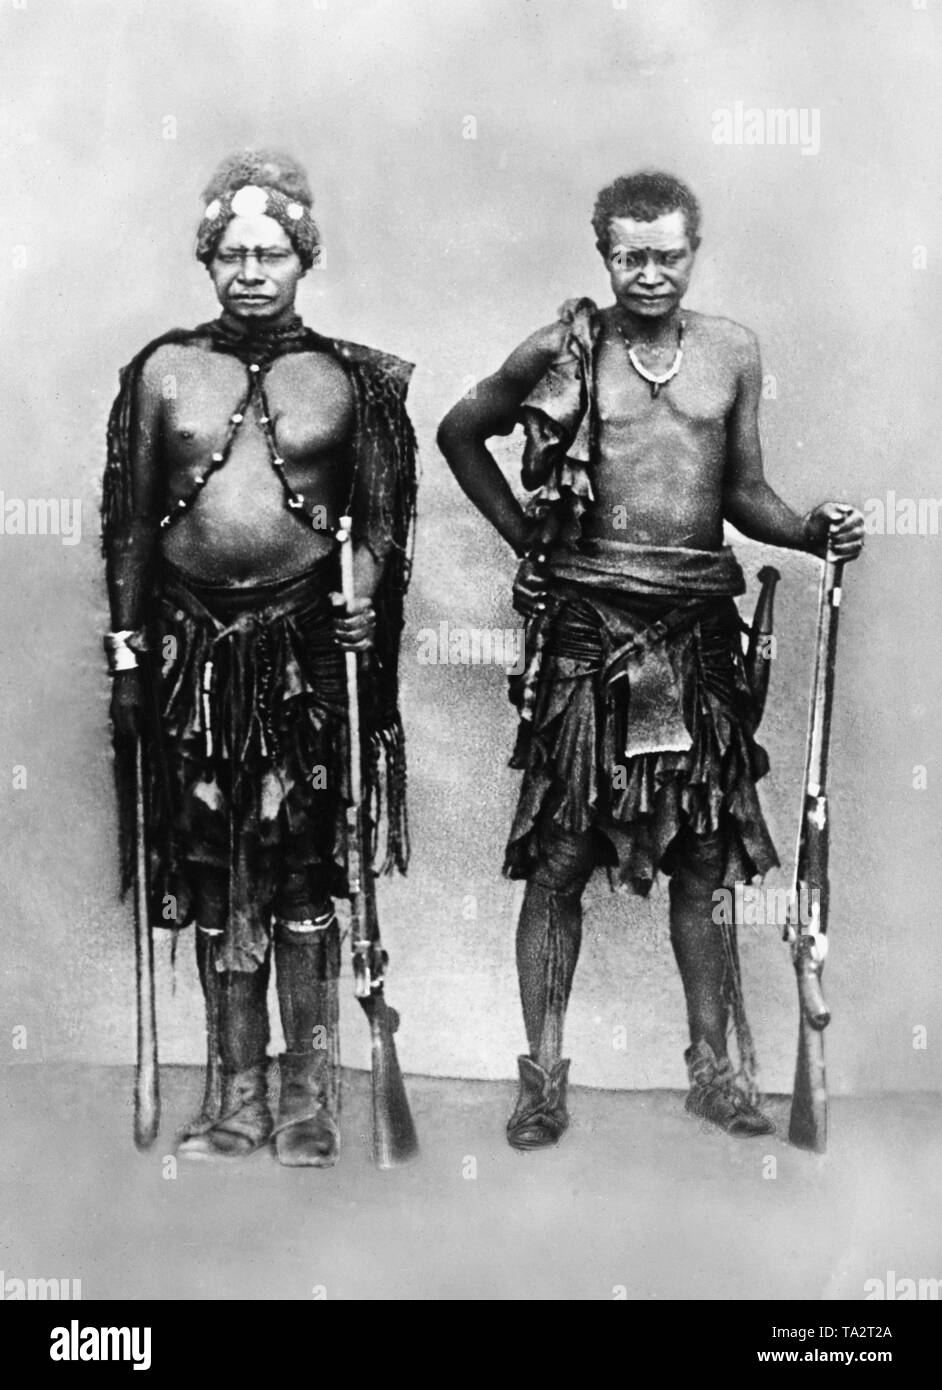 Herero chief Kambazembi wa Kangombe, a tribal leader of the Herero, the man on the right next to him is unknown. Both wear traditional clothing, jewelry and guns (undated shot). - Stock Image